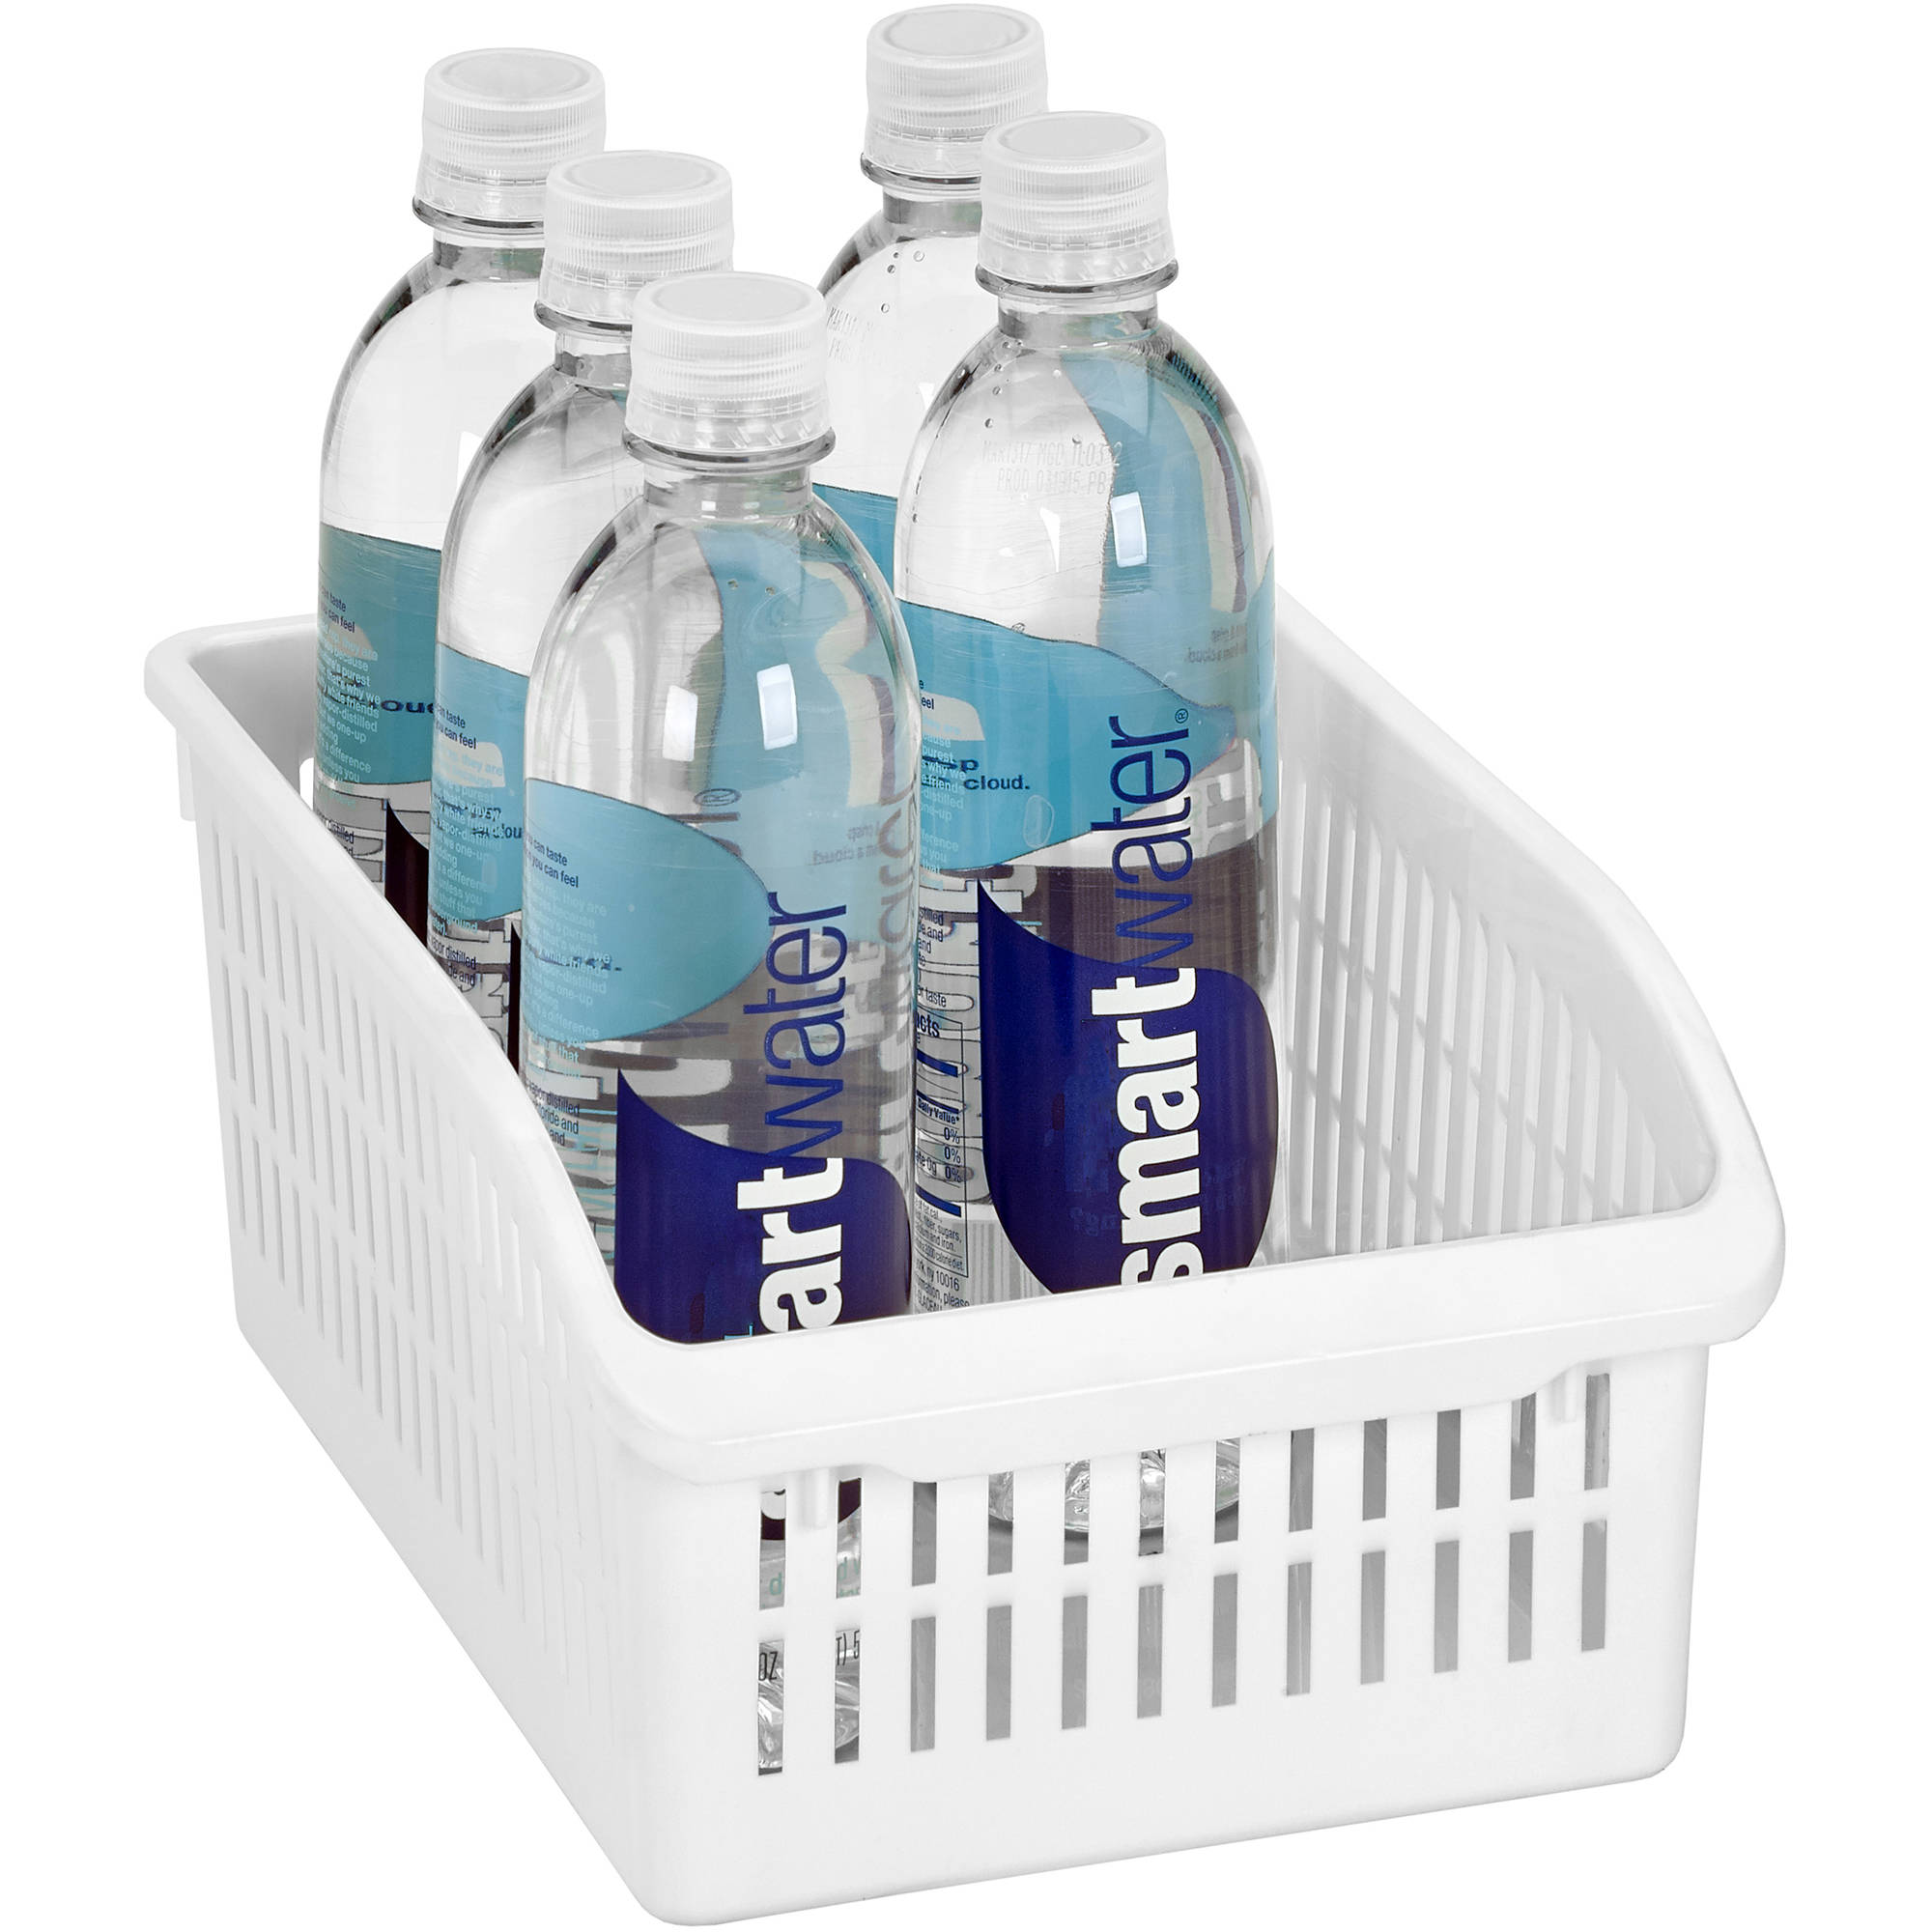 Kitchen Details Easy Pull Pantry Organizer Basket, Double Wide